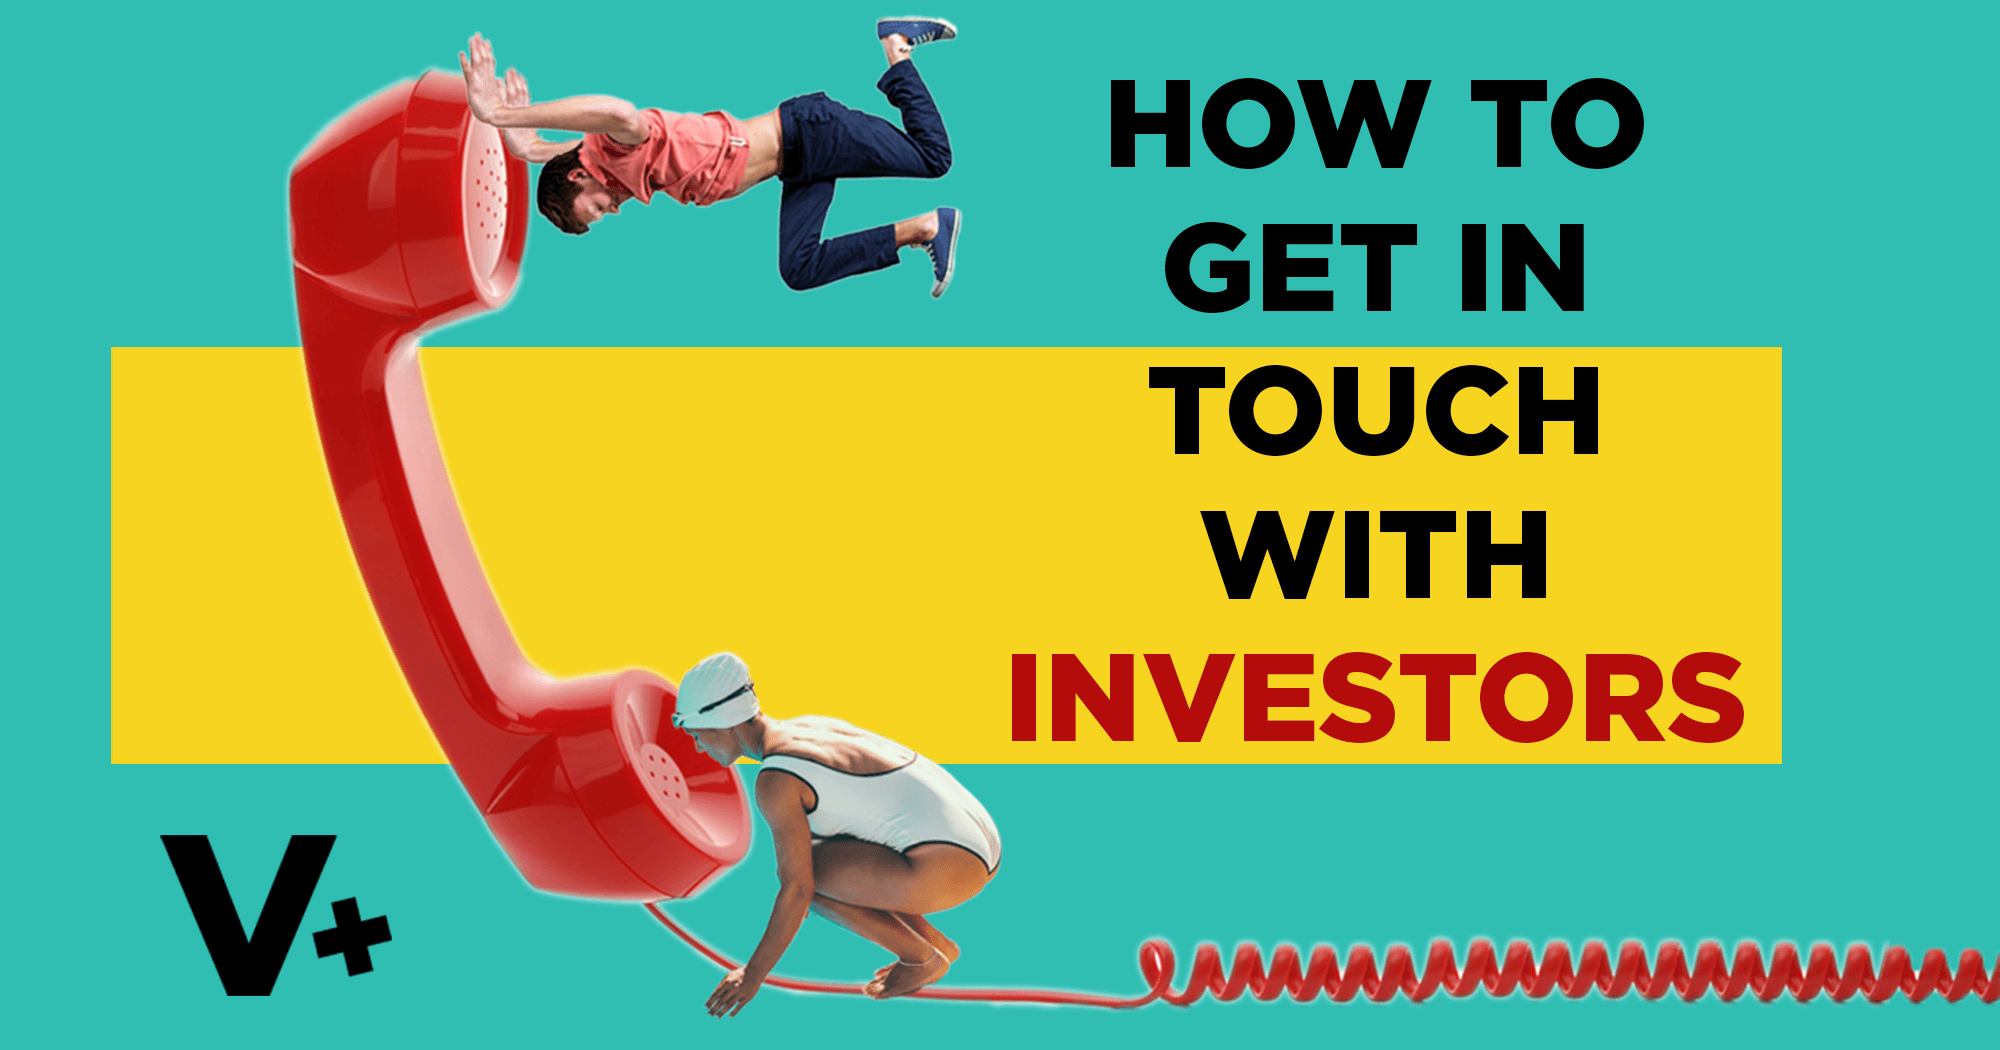 How to Get in Touch with Investors